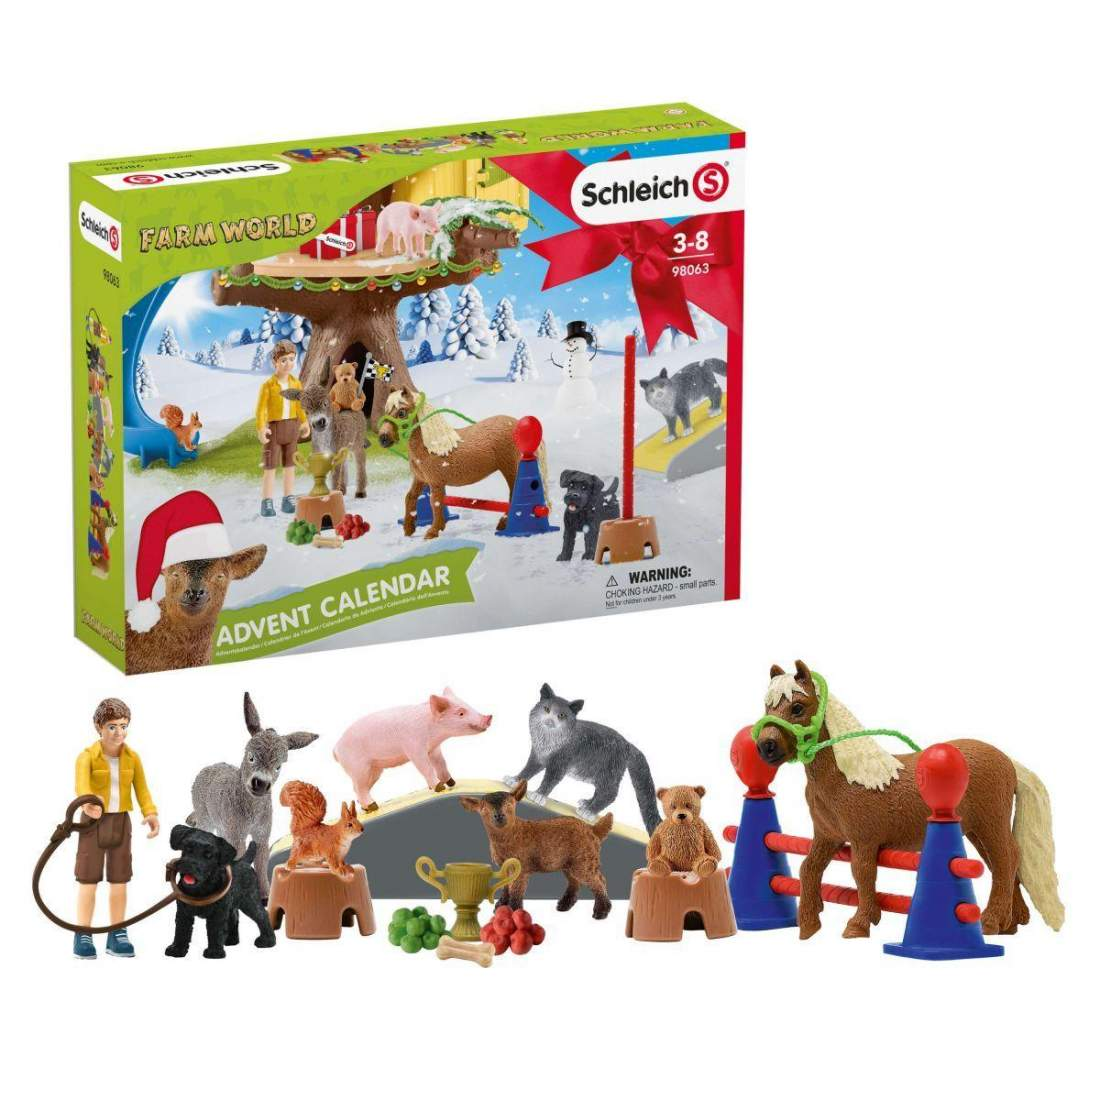 SCHLEICH CALENDARIO DELL'AVVENTO FARM WORLD 2020 98063